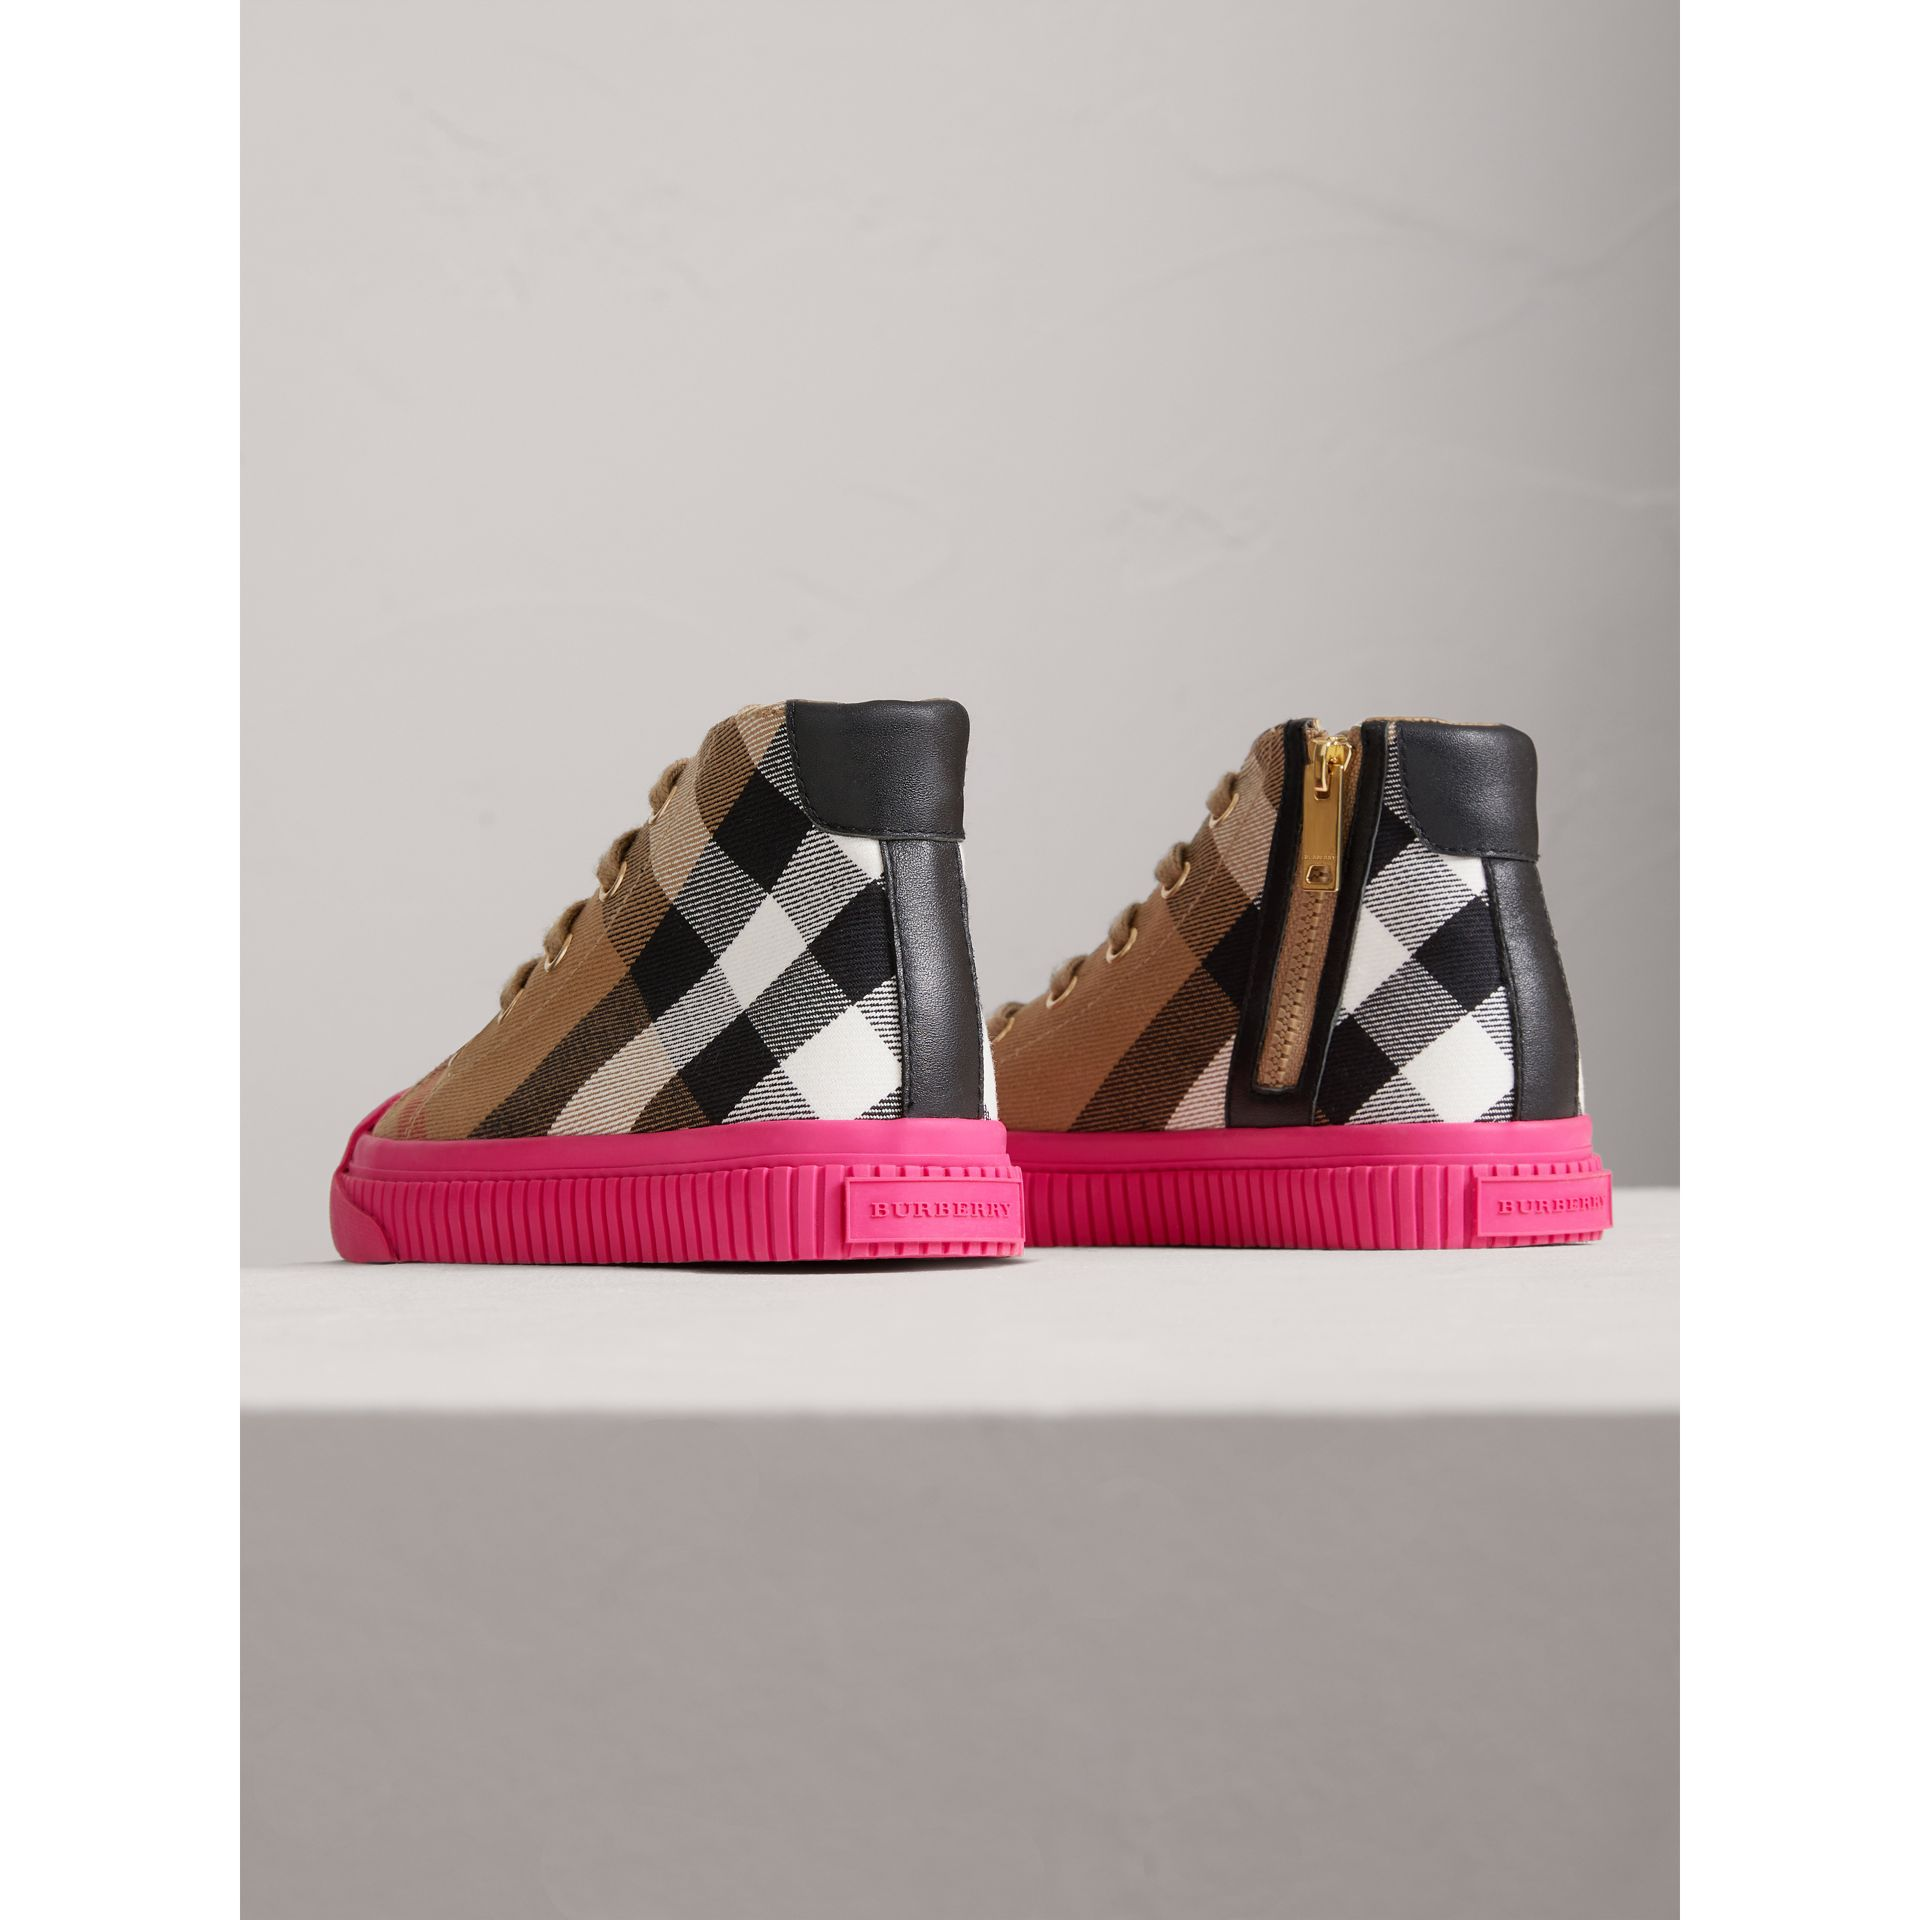 House Check and Leather Trainers in Classic/neon Pink | Burberry - gallery image 3